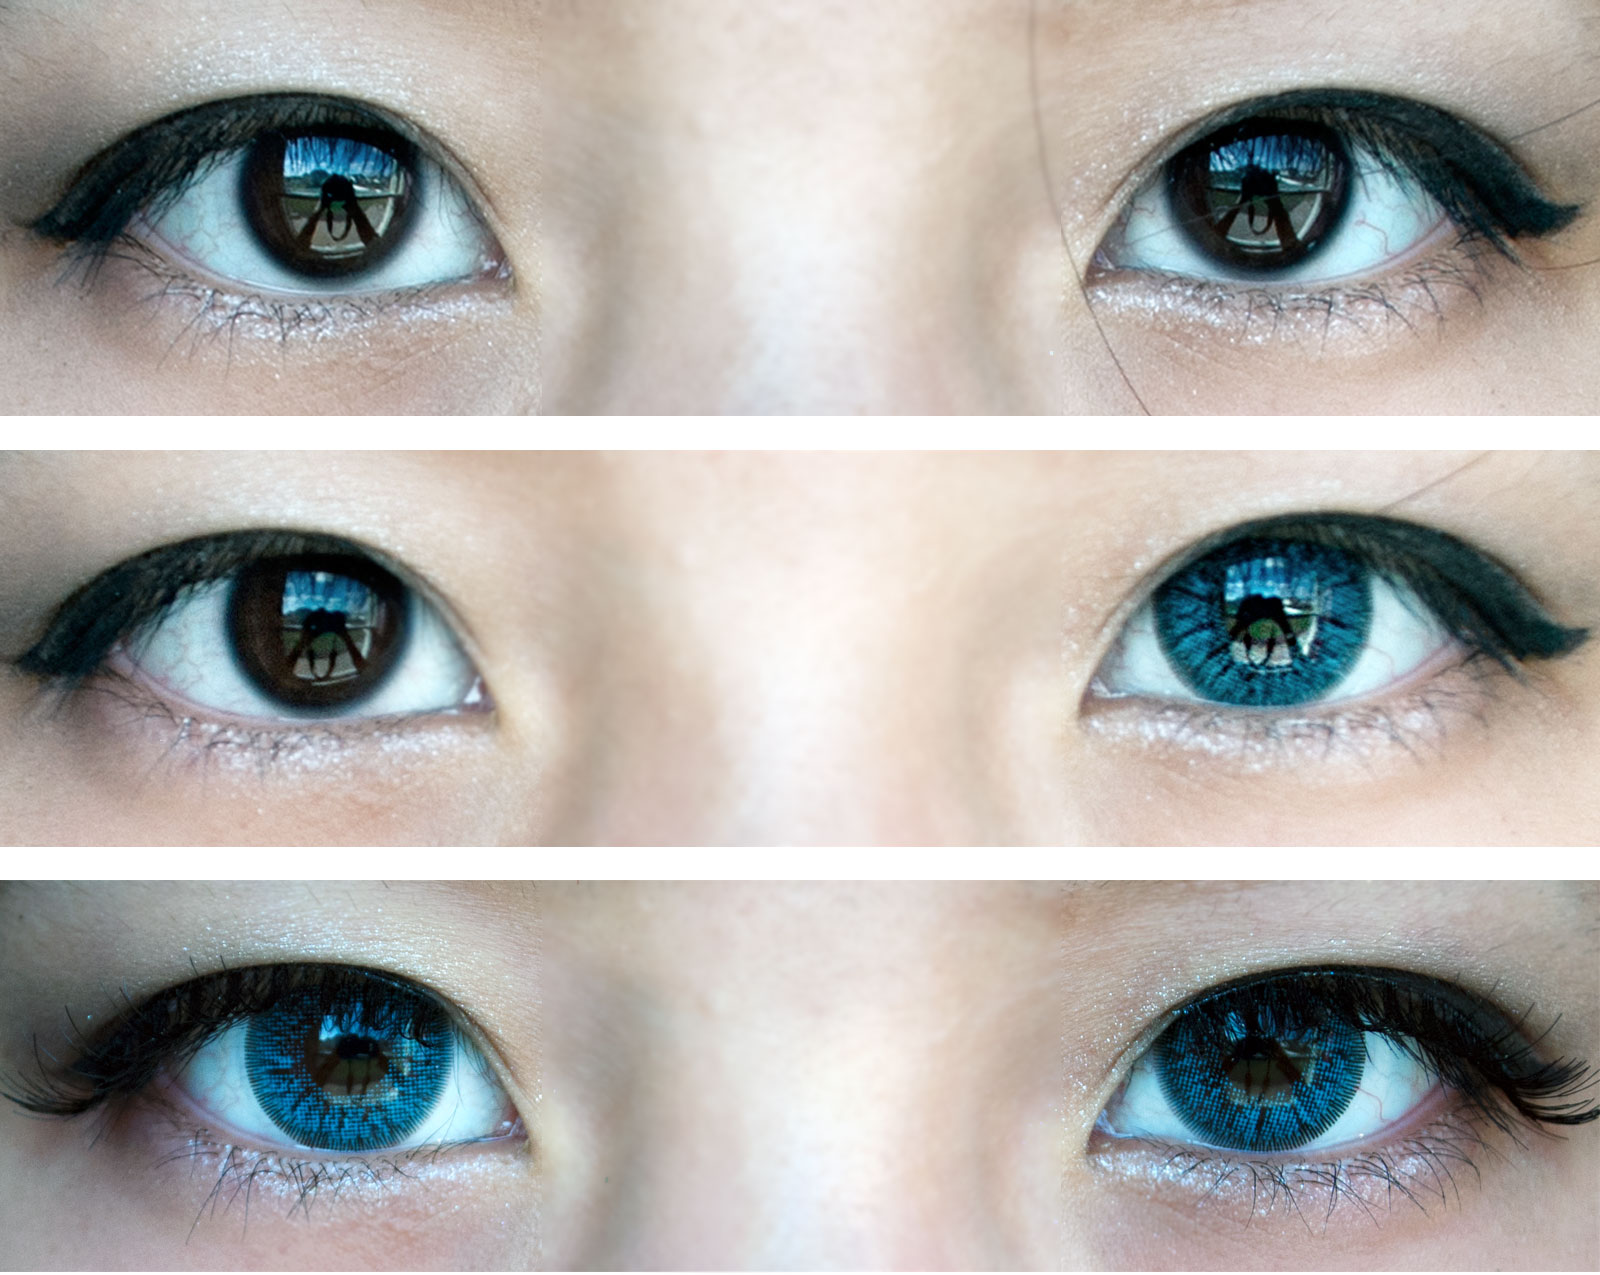 Review of GBT Sky blue lenses on the eyes in window lighting; from Pinky Paradise!